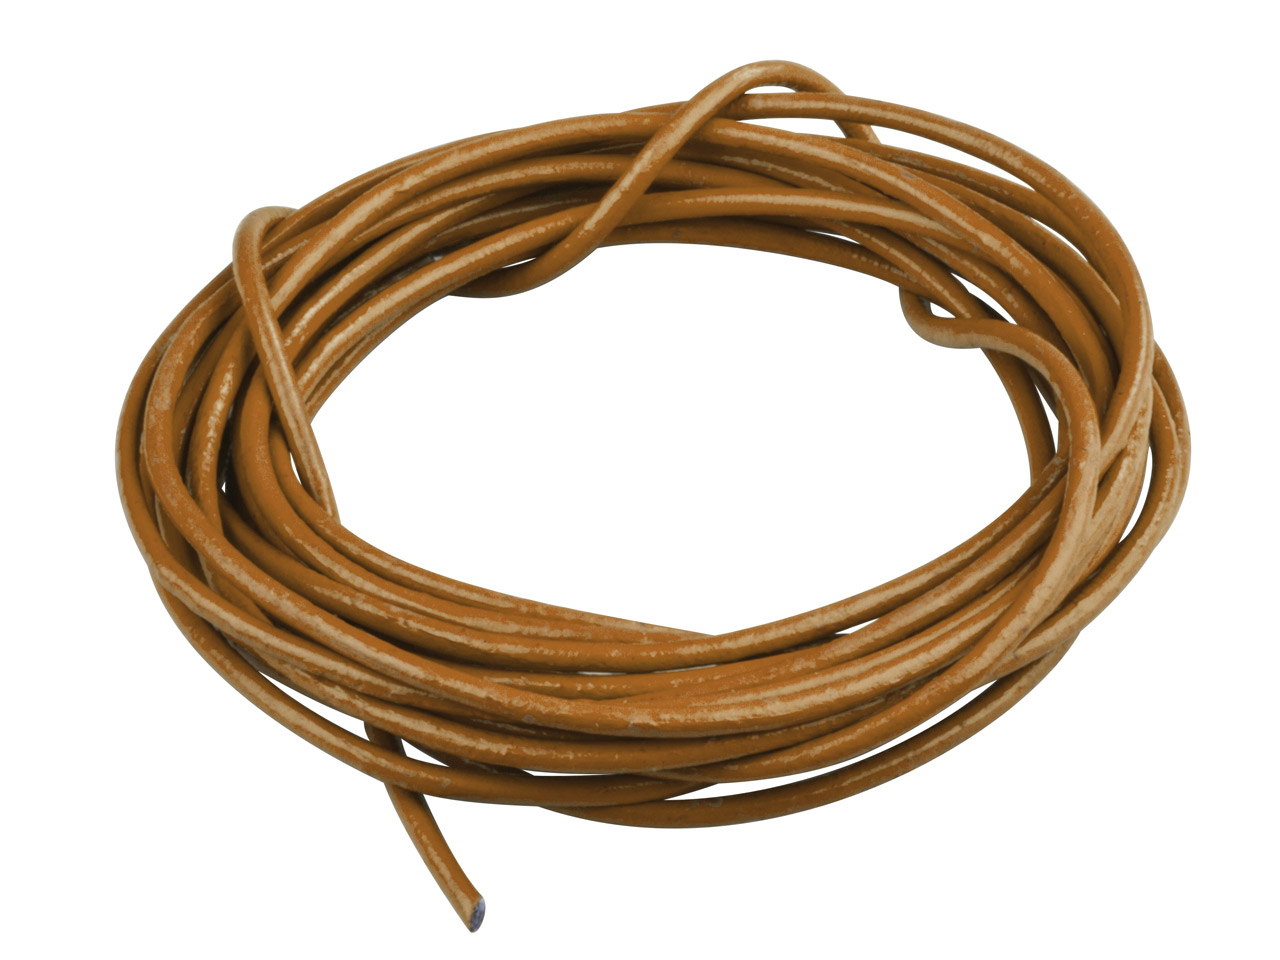 Brown Round Leather Cord 2mm       Diameter, 1 X 5 Metre Length